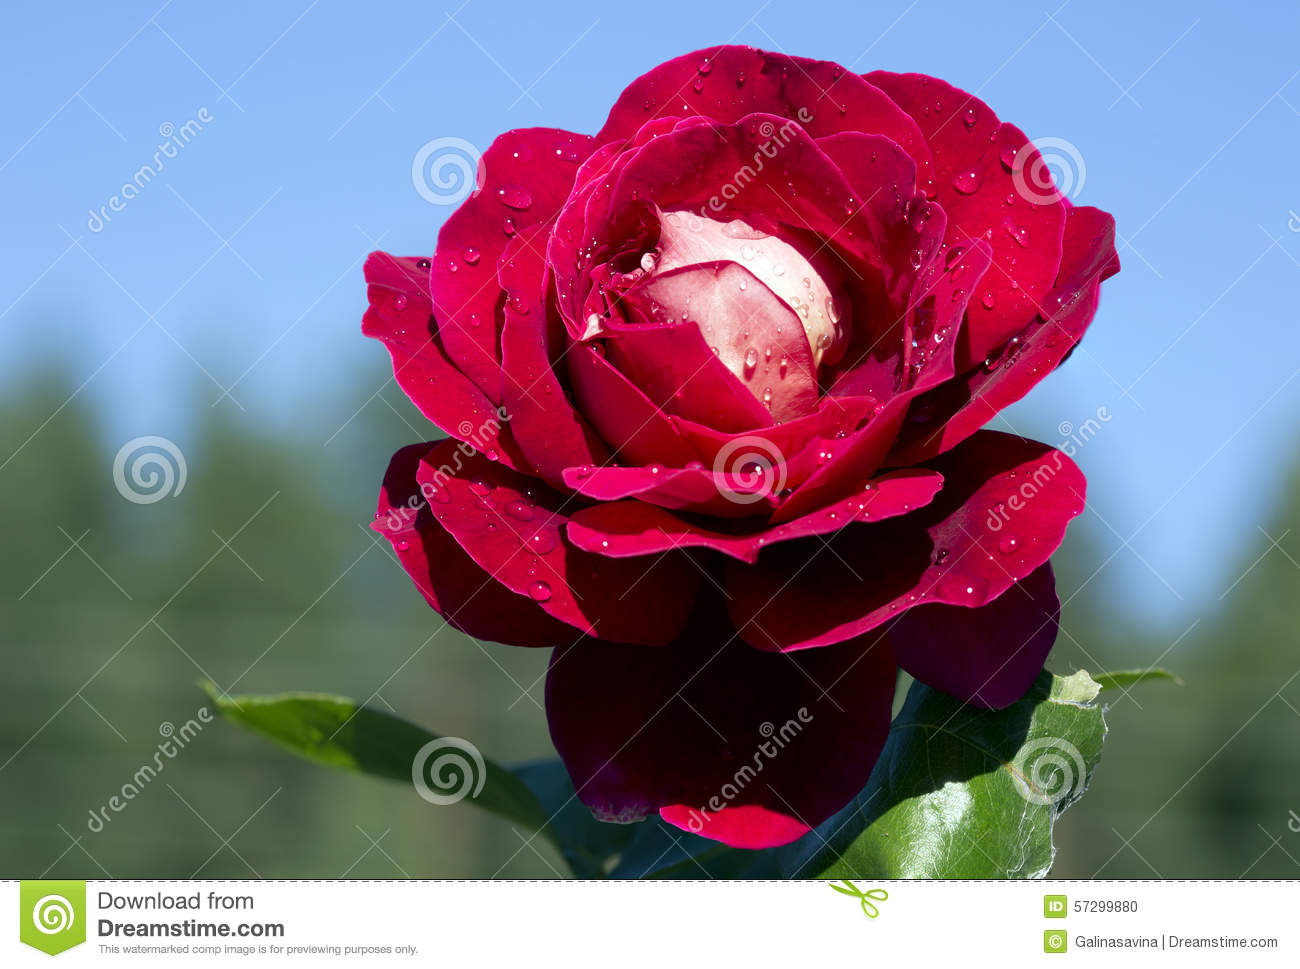 Red Rose Queen Of Flowers Stock Photo Image Of Gardening 57299880